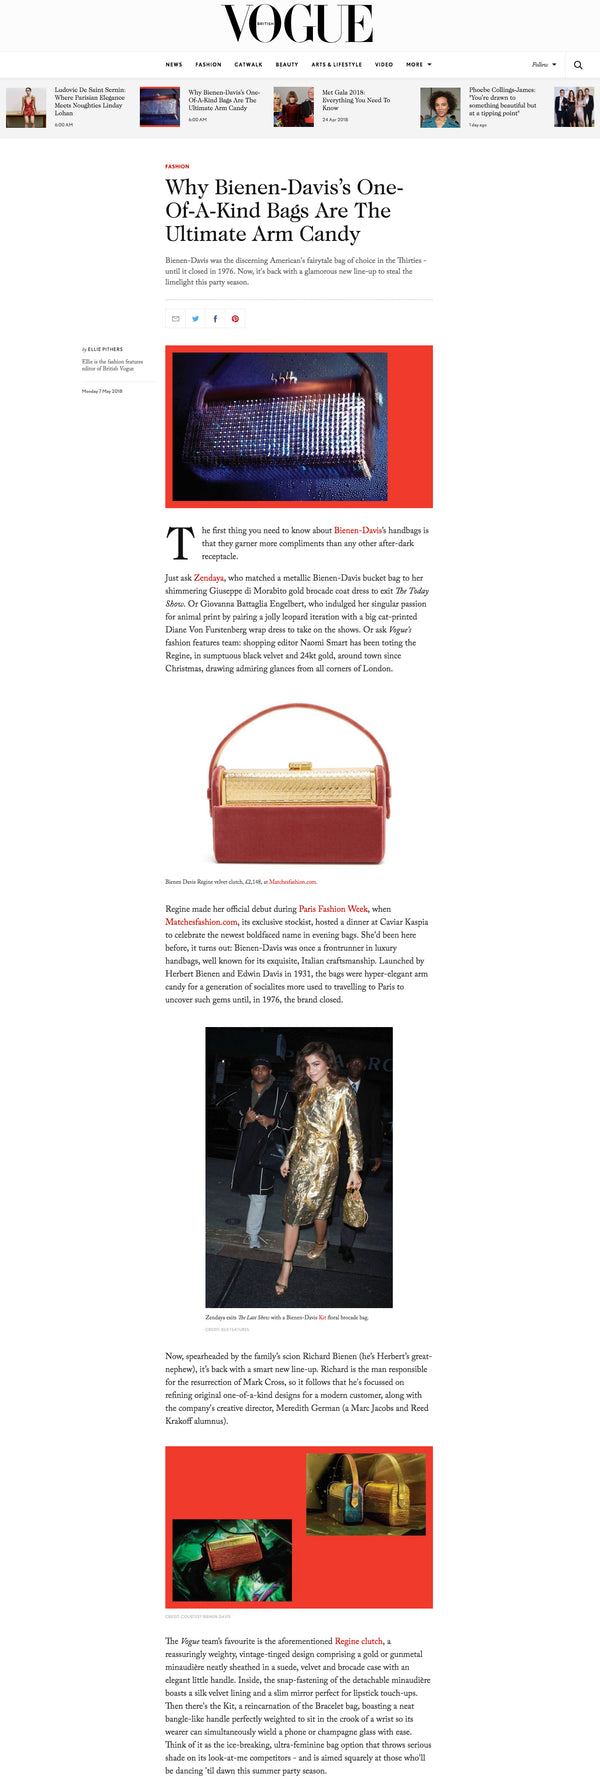 British_Vogue_Why_Bienen-Davis_One-Of-A-Kind Bags_Are_The_Ultimate_Arm_Candy